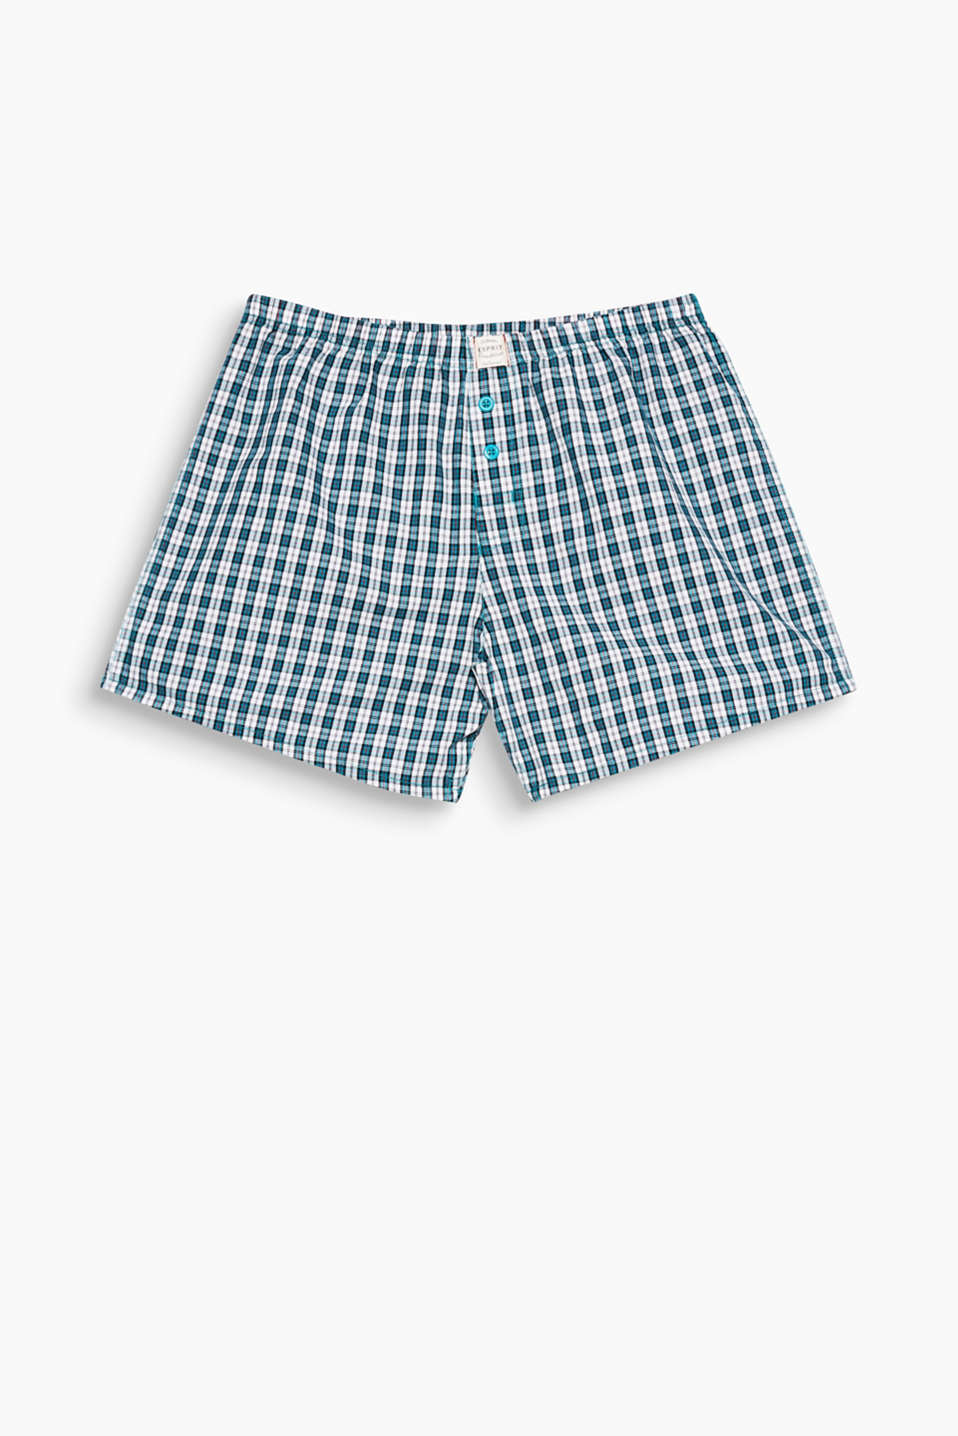 Boxer shorts are an unmissable basic. This pair is made of pure cotton and features a fine, modern check pattern!